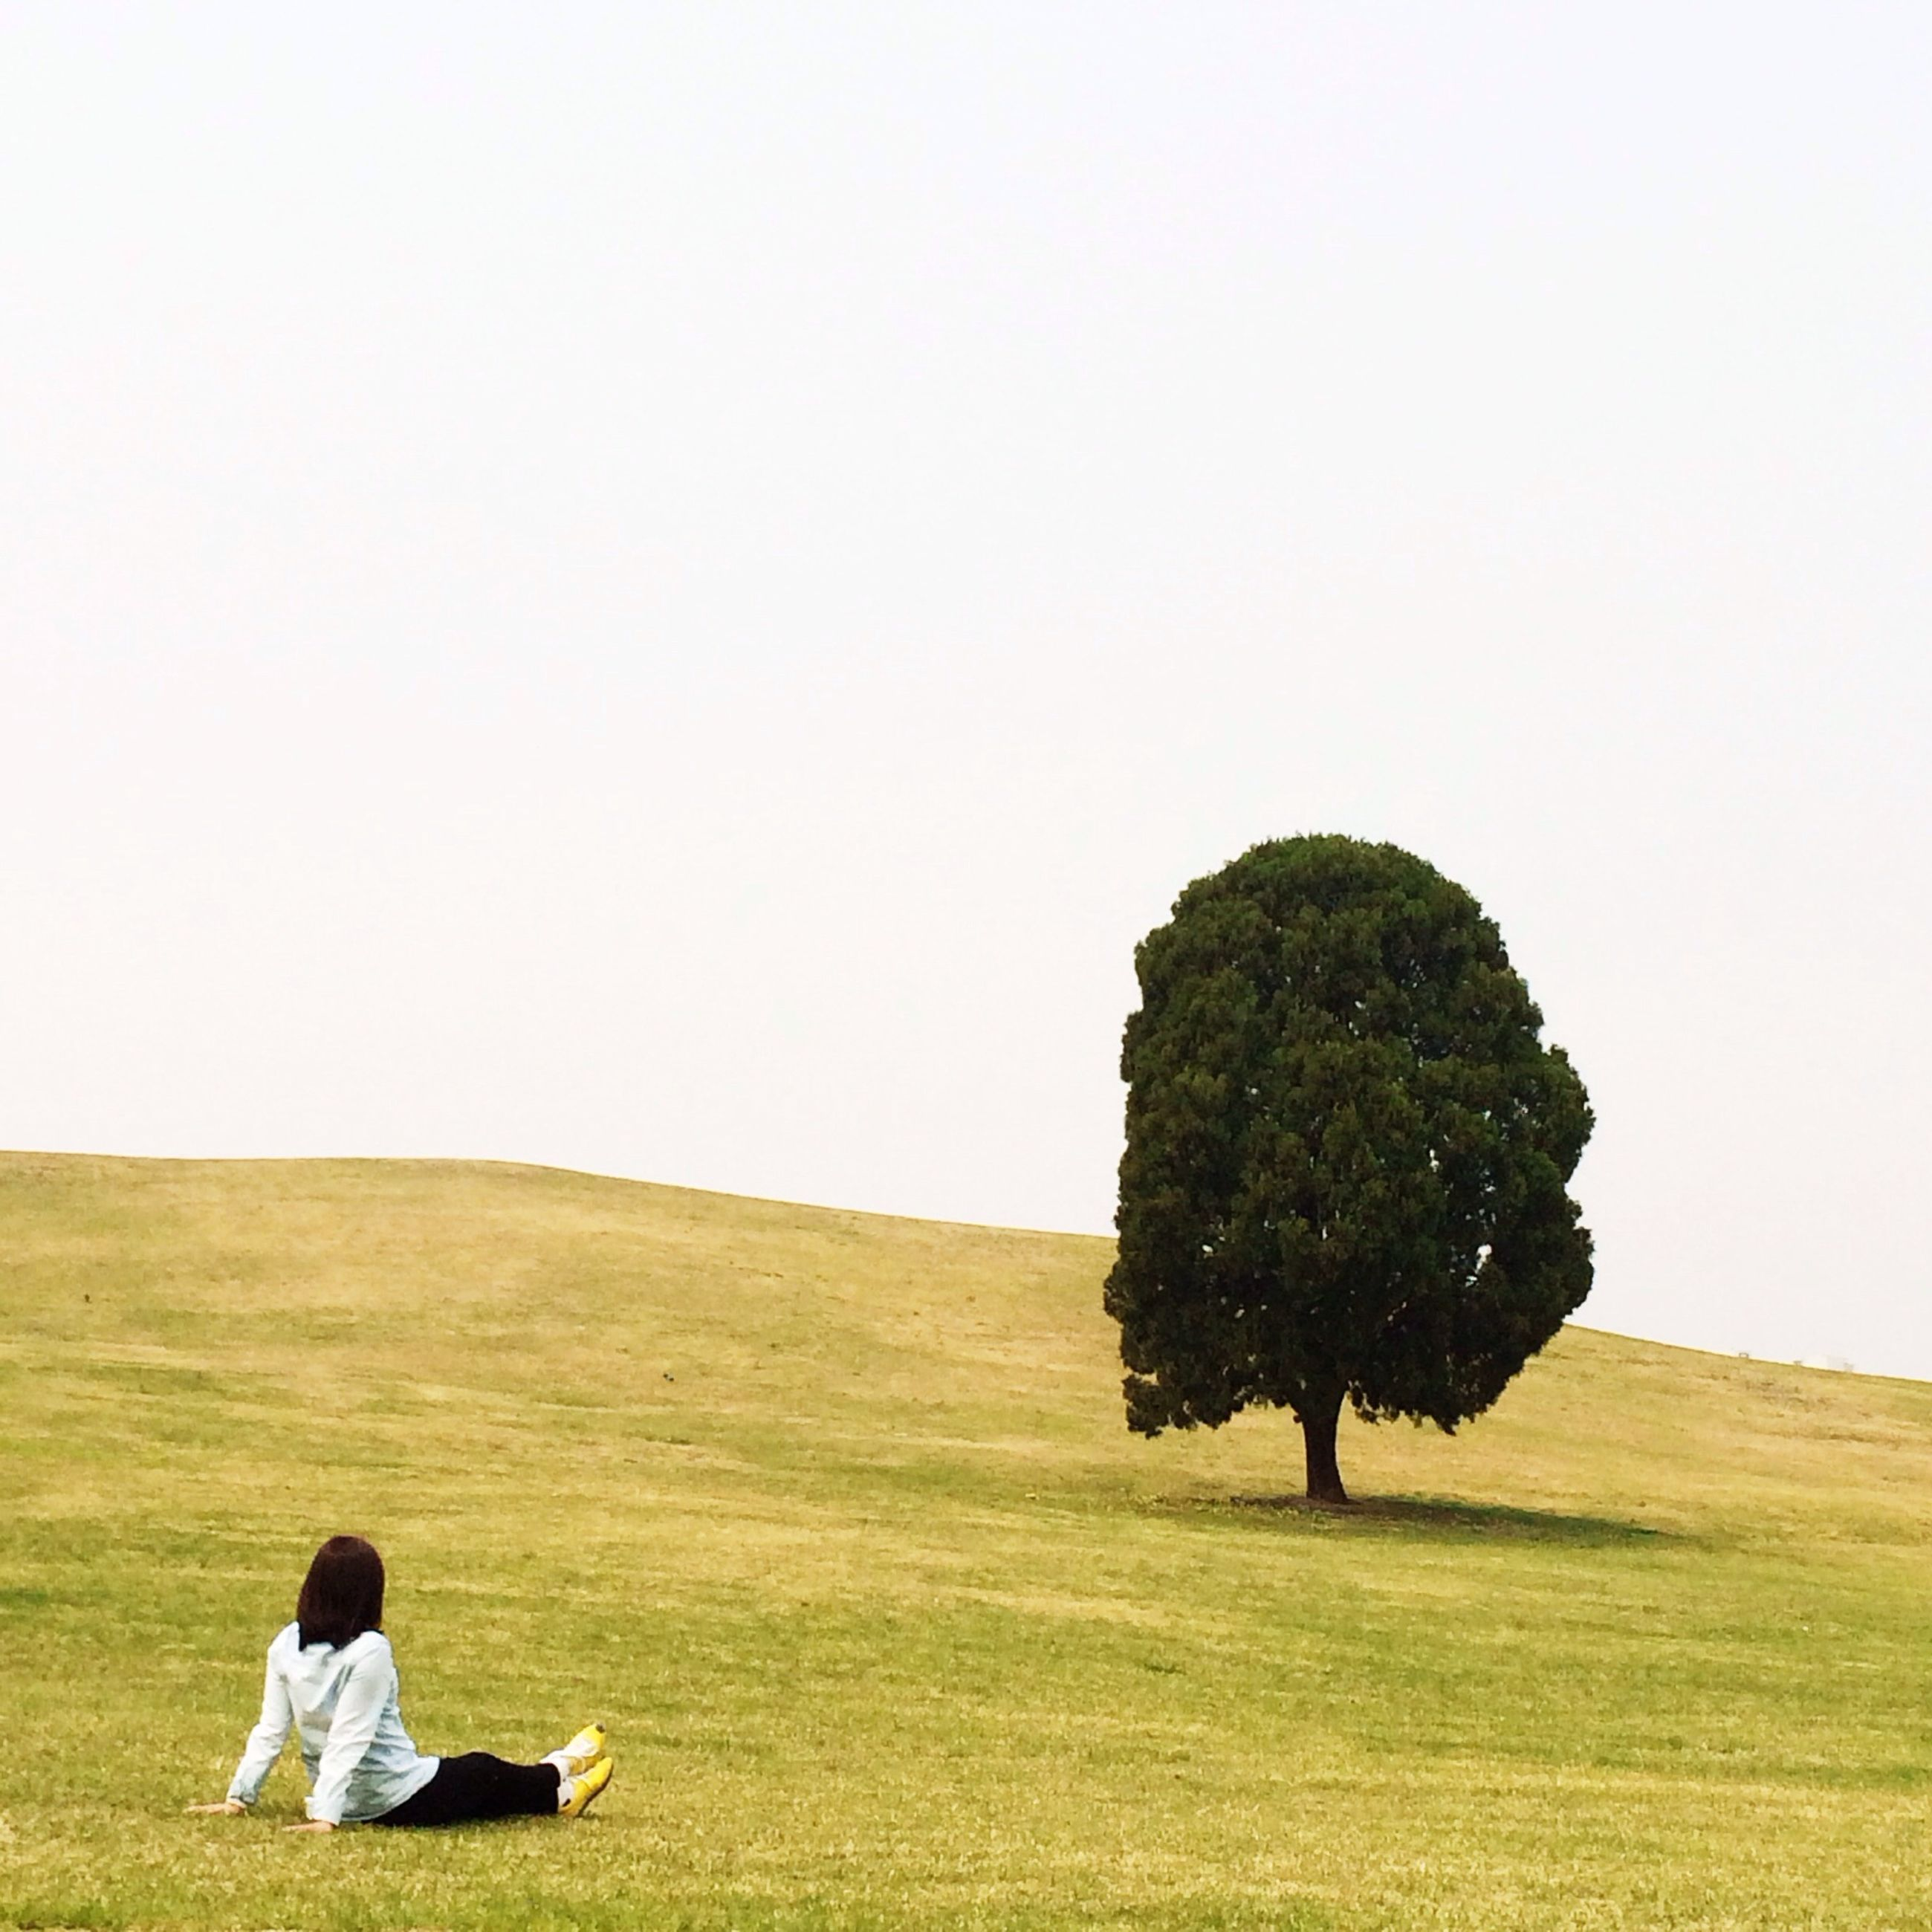 lifestyles, grass, men, leisure activity, landscape, field, clear sky, copy space, rear view, person, tranquility, tree, full length, tranquil scene, nature, standing, grassy